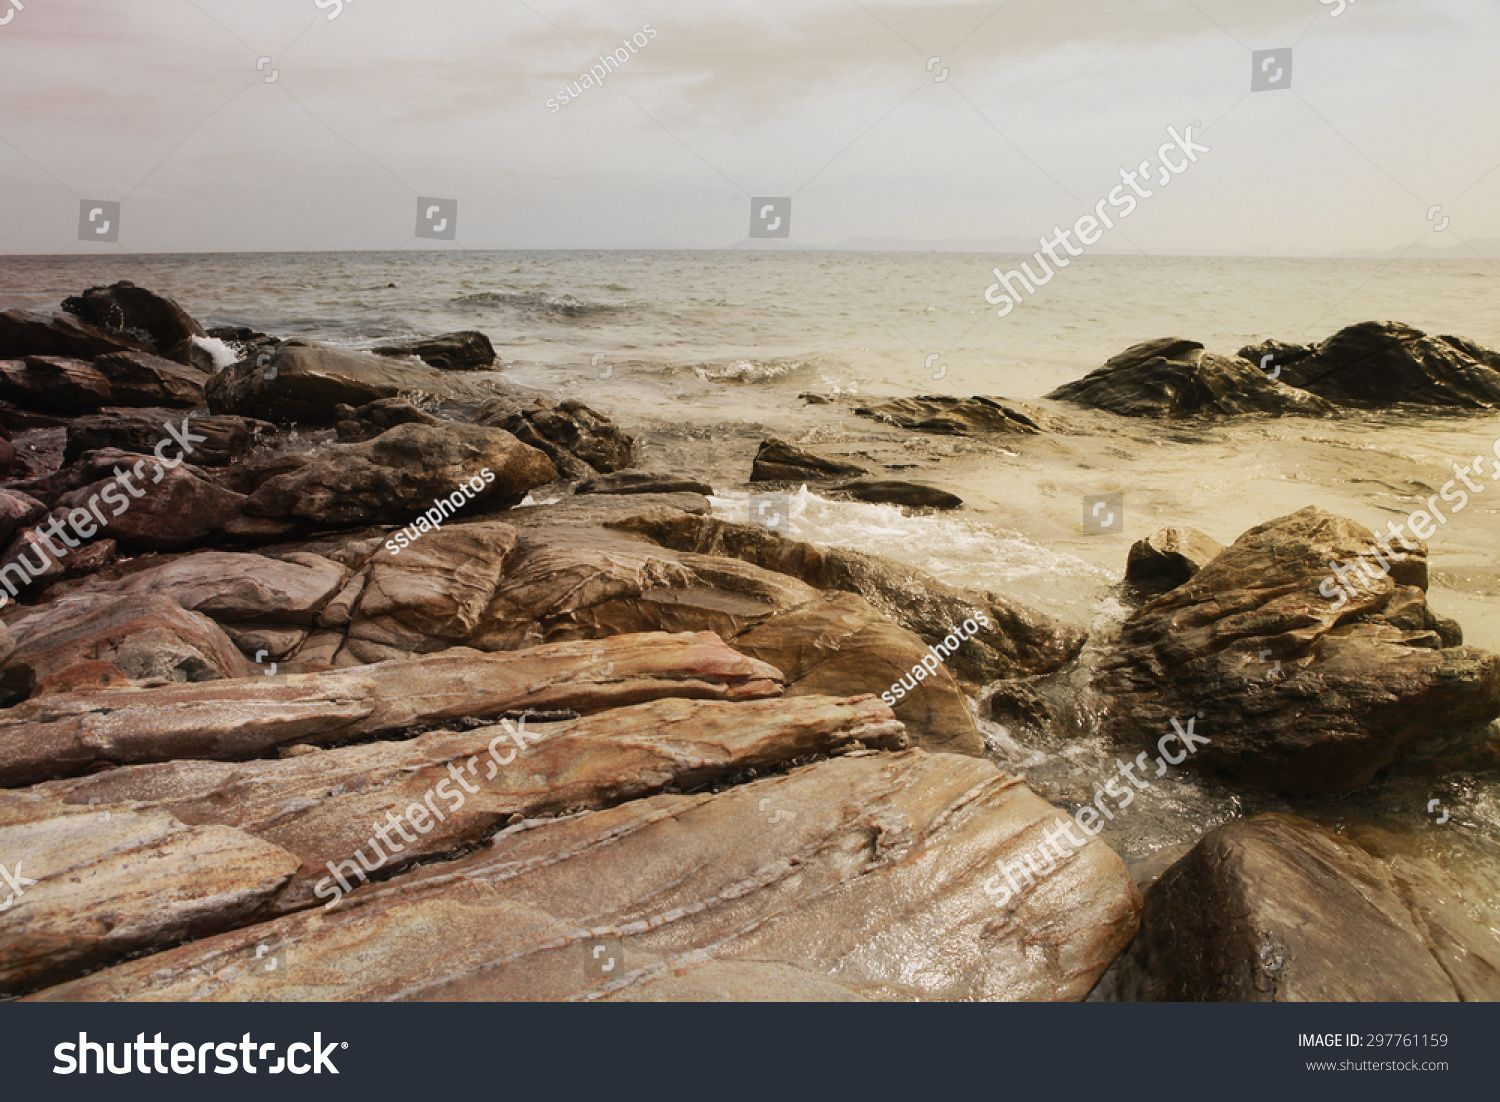 Beautiful Ocean With Rocks Island Of Thailand Royalty Free Images Ssuaphoto Stock Photography Shutterstock Background Bay Beautiful Beauty Cloudy